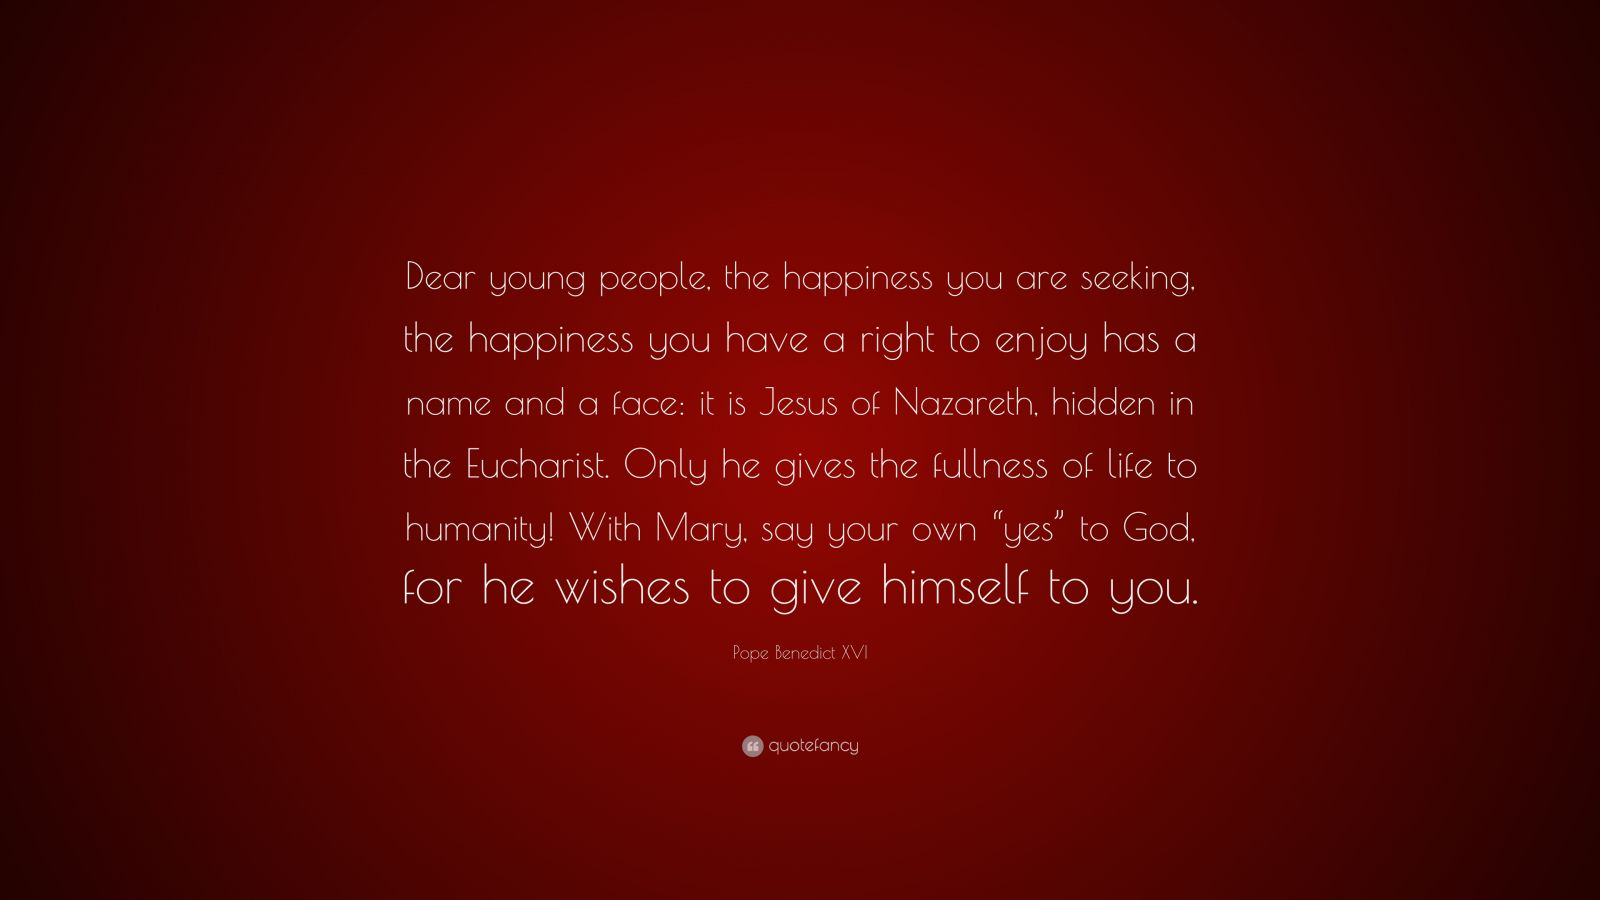 """Pope Benedict XVI Quote: """"Dear young people, the happiness you are seeking, the happiness you have a right to enjoy has a name and a face: it is Jesus of Nazareth, hidden in the Eucharist. Only he gives the fullness of life to humanity! With Mary, say your own """"yes"""" to God, for he wishes to give himself to you."""""""